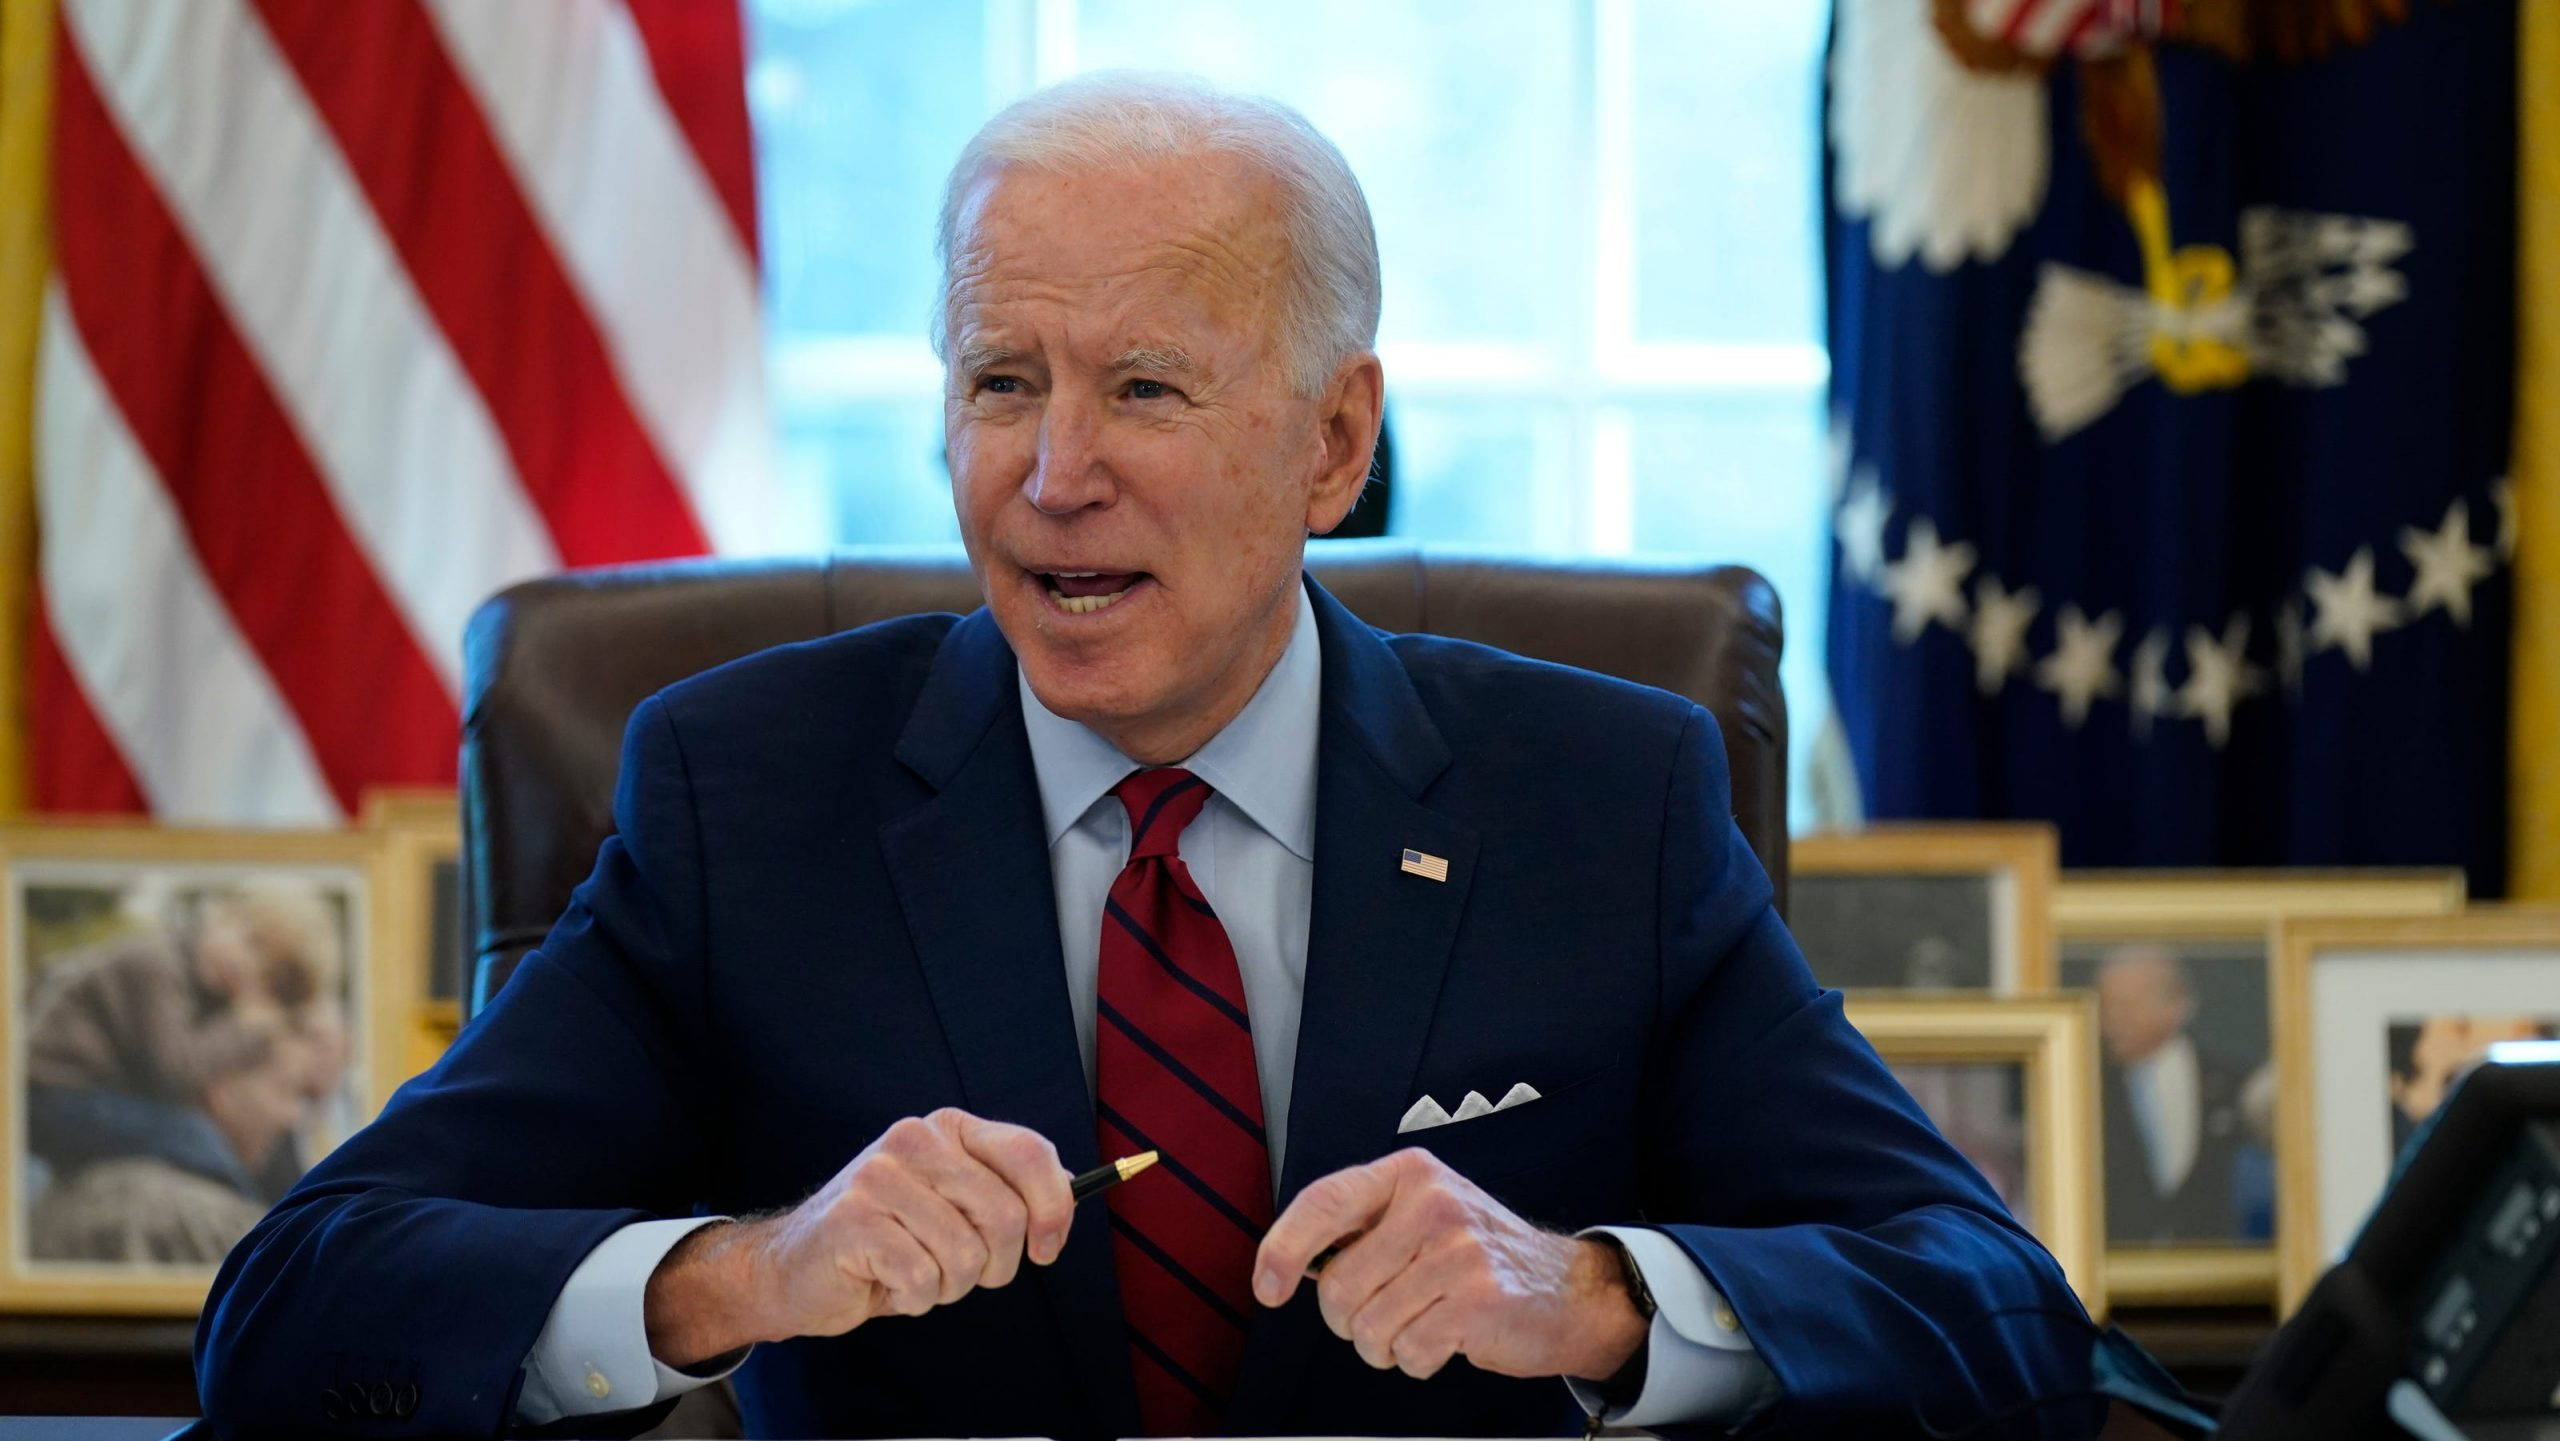 Joe Biden working from the Oval Office in January (AP Photo/Evan Vucci)